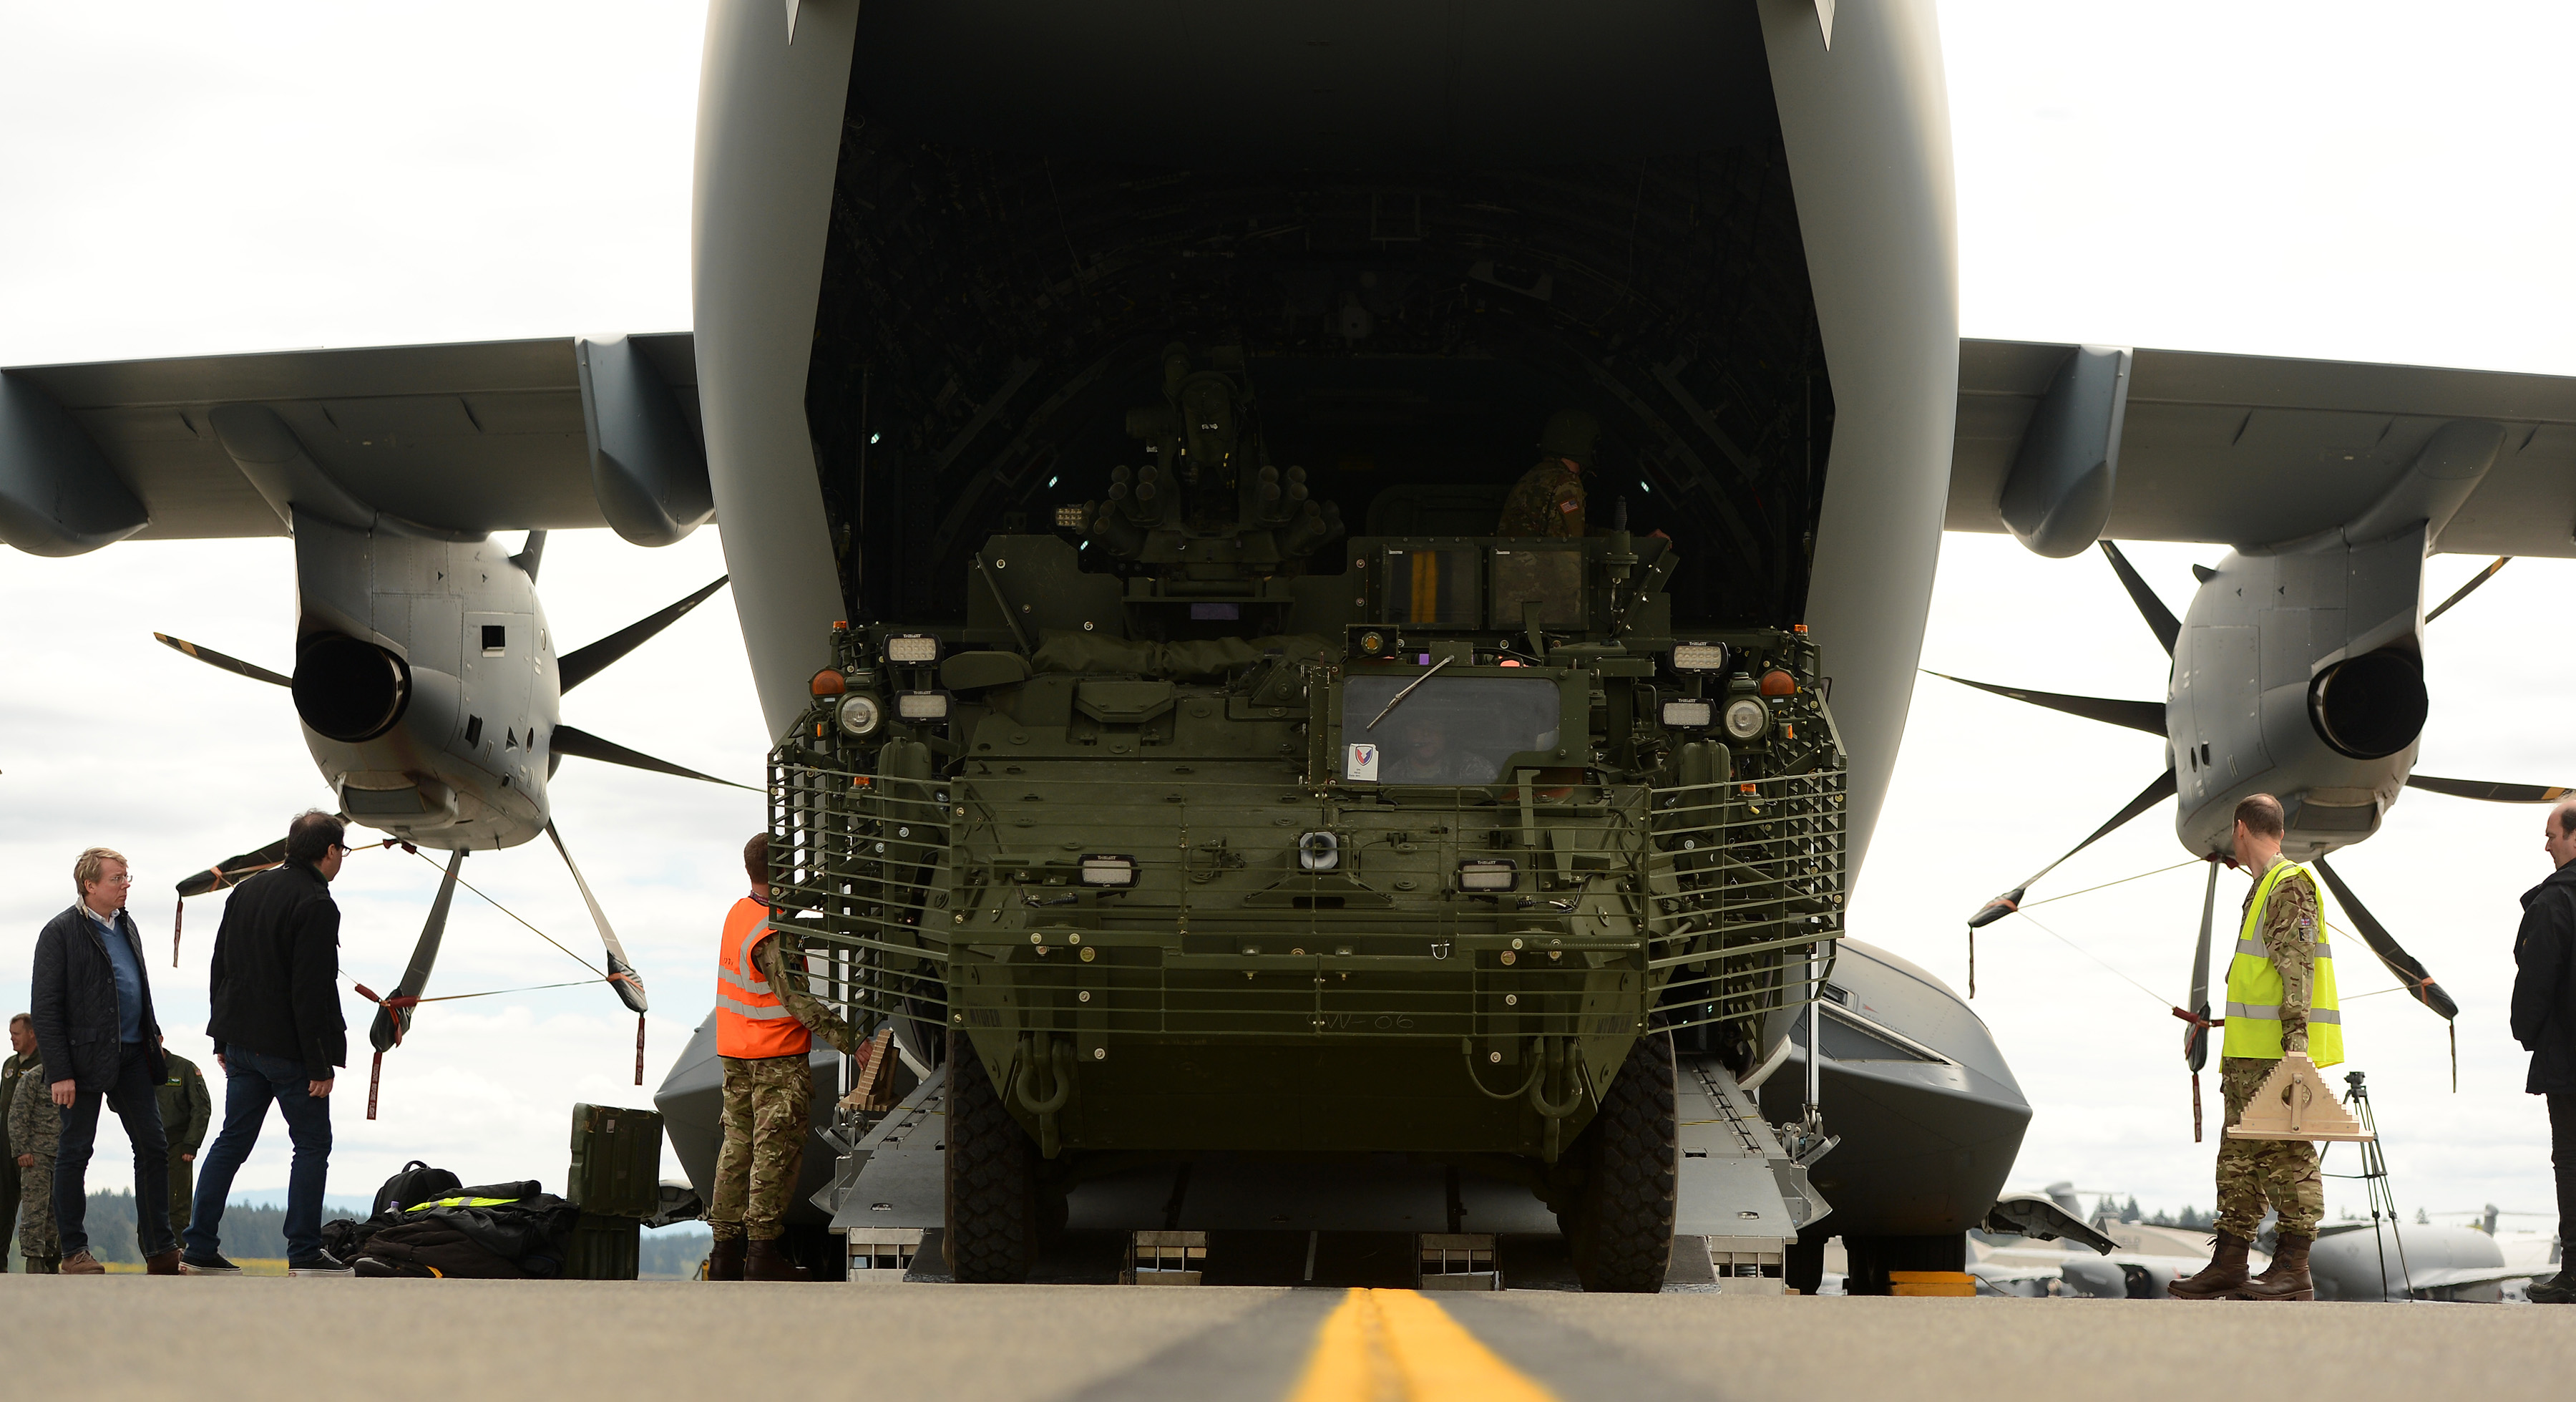 833rd aero squadron - Jblm Kicks Off Exercise Mobility Guardian